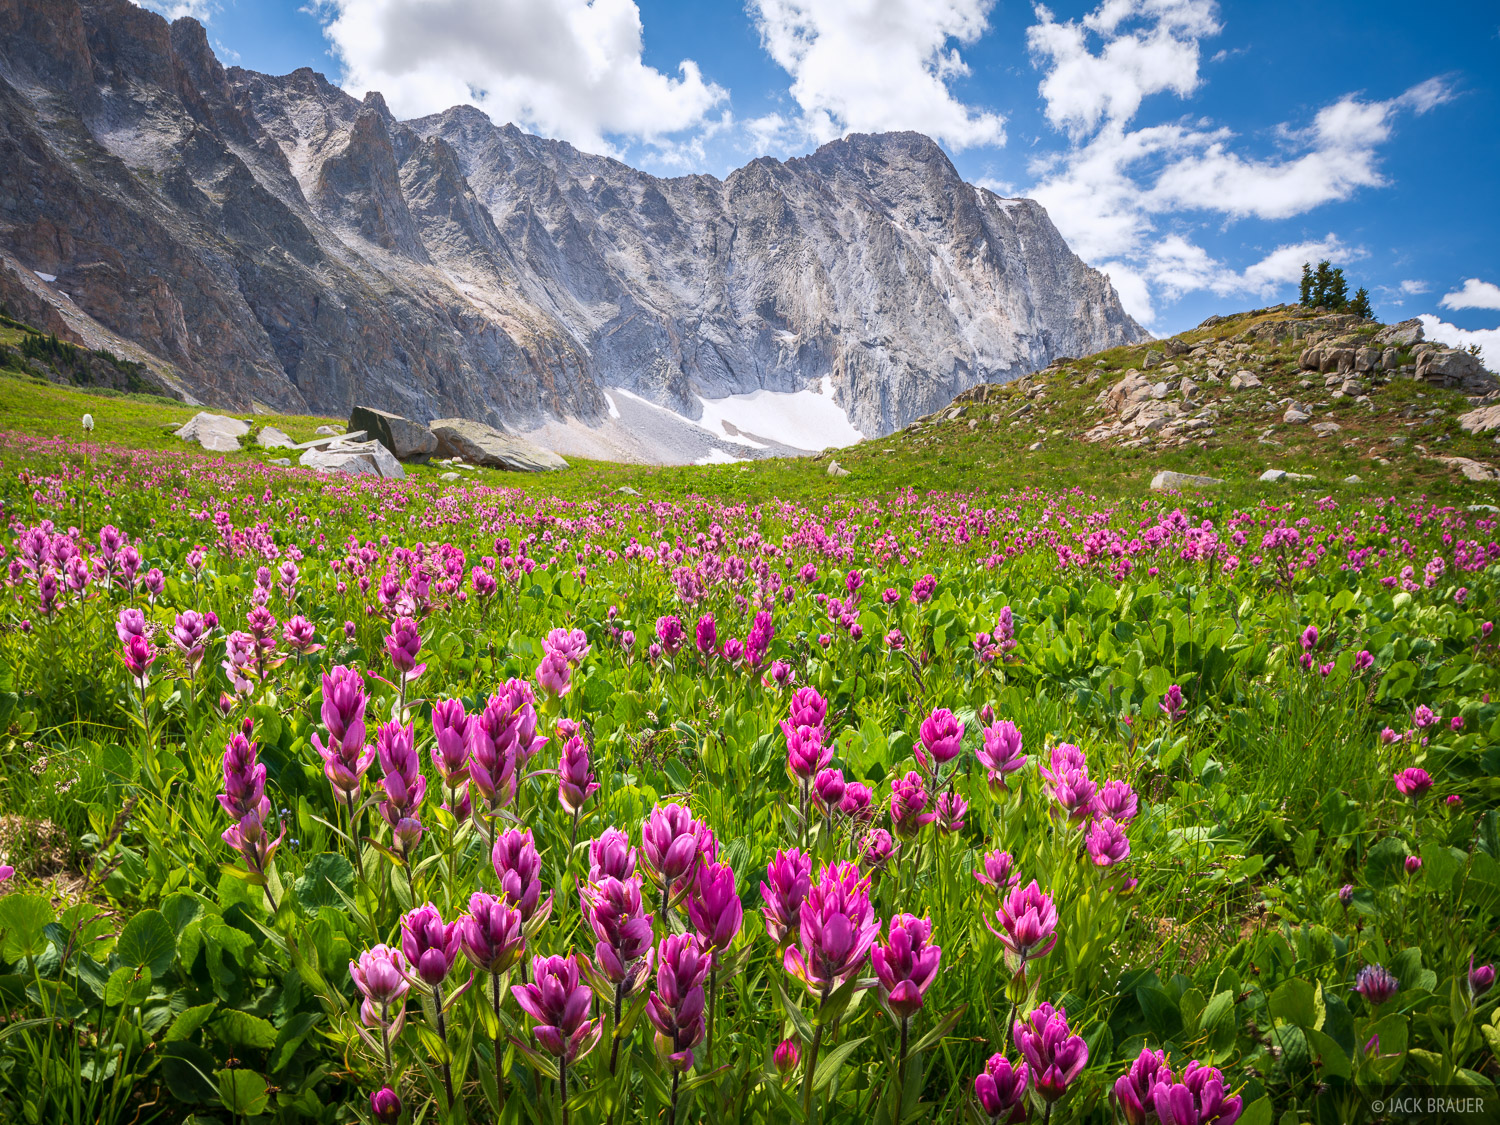 Capitol Peak, Colorado, Elk Mountains, Maroon Bells Snowmass Wilderness, wildflowers, photo